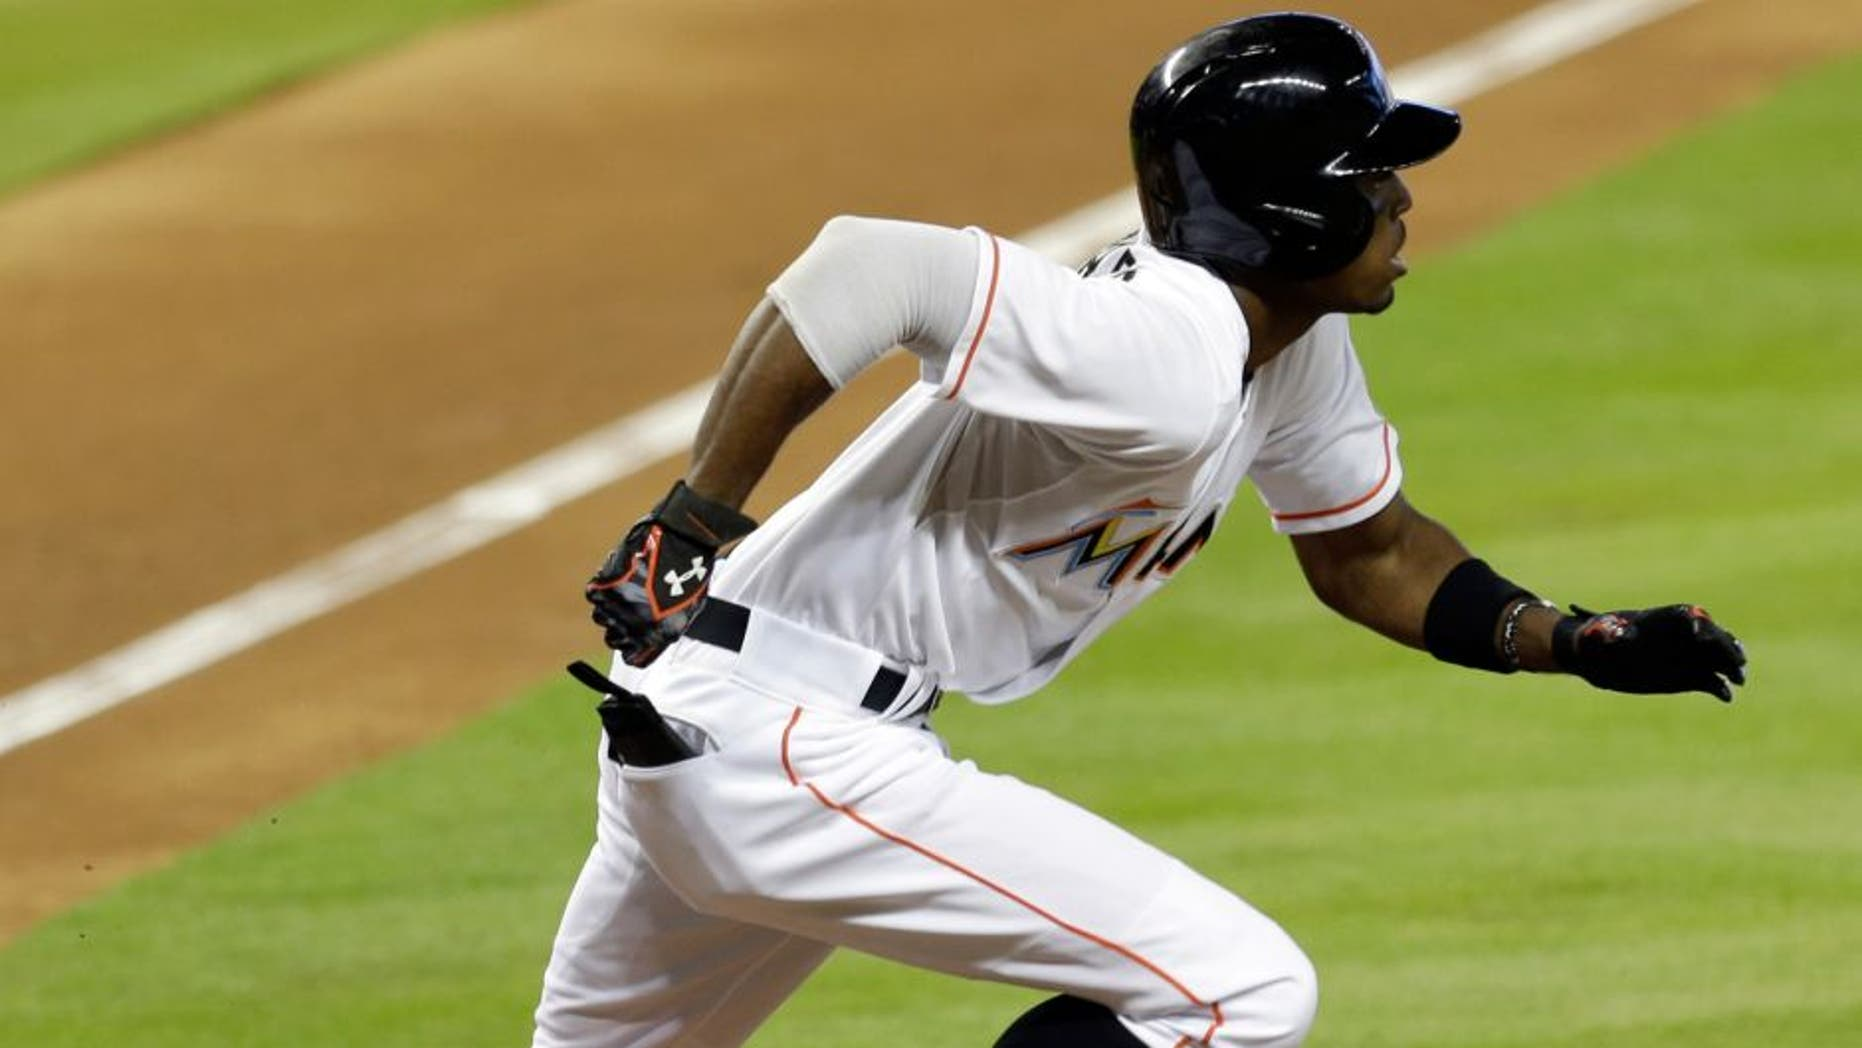 Miami Marlins' Dee Gordon heads to first base after hitting a solo home run against the Boston Red Sox during the first inning of a baseball game, Wednesday, Aug. 12, 2015, in Miami. (AP Photo/Alan Diaz)